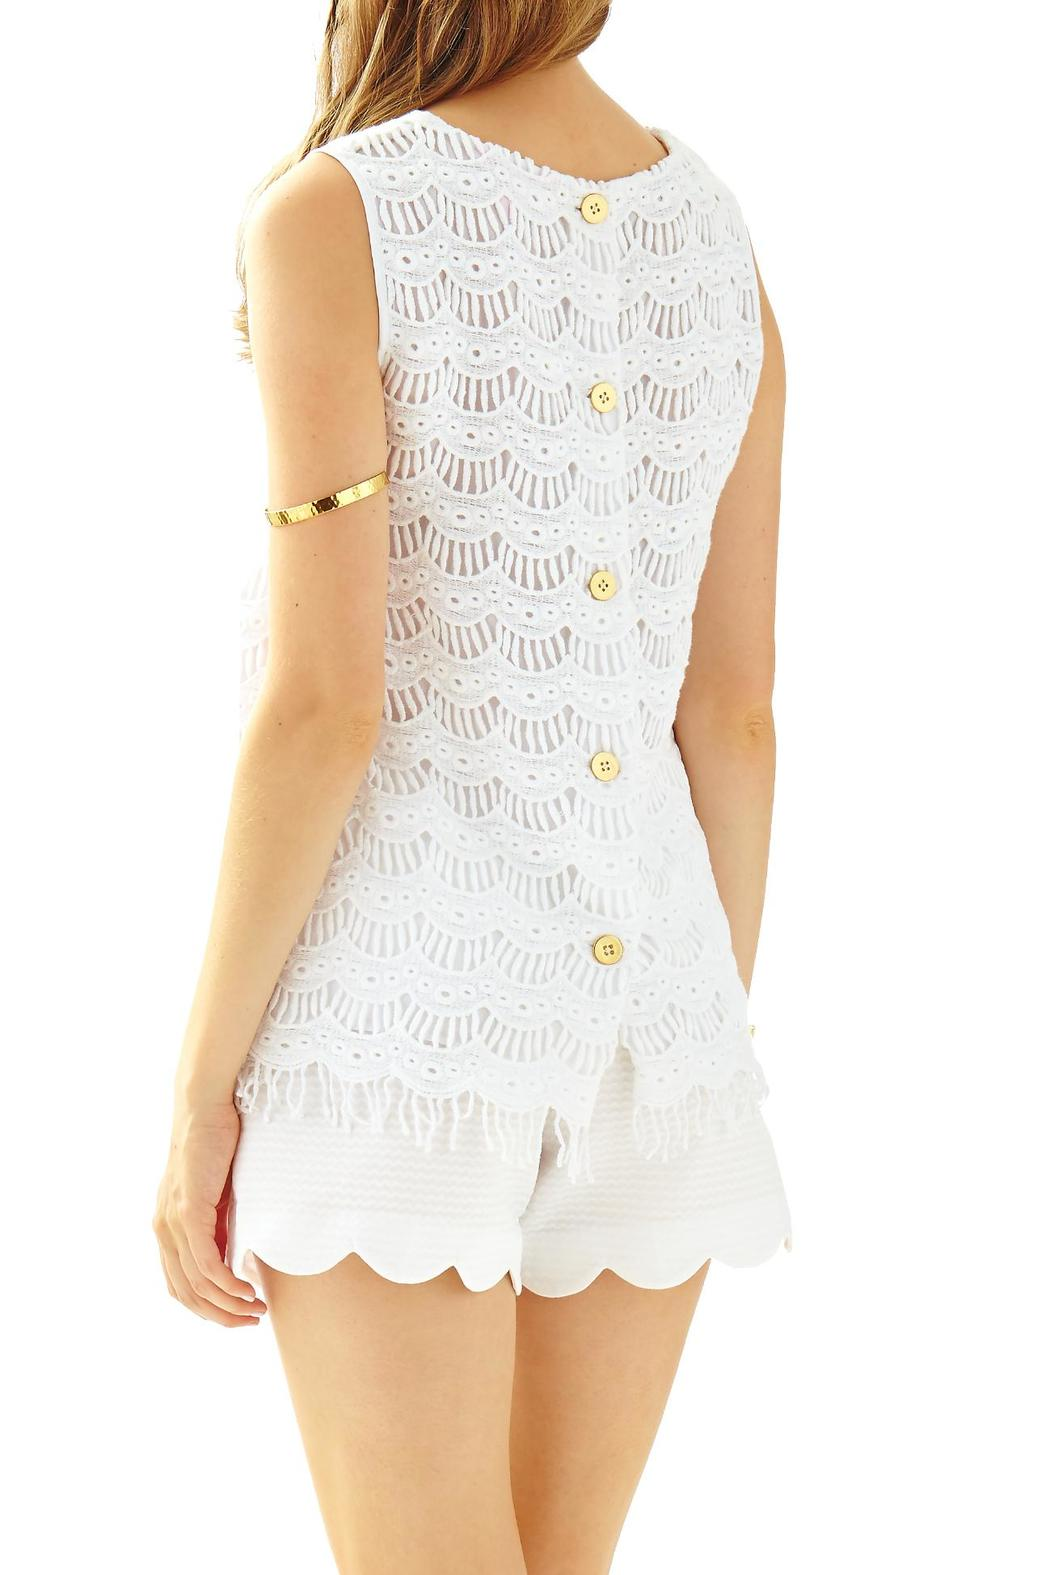 Lilly Pulitzer Iona Sleeveless-Lace Shell - Front Full Image